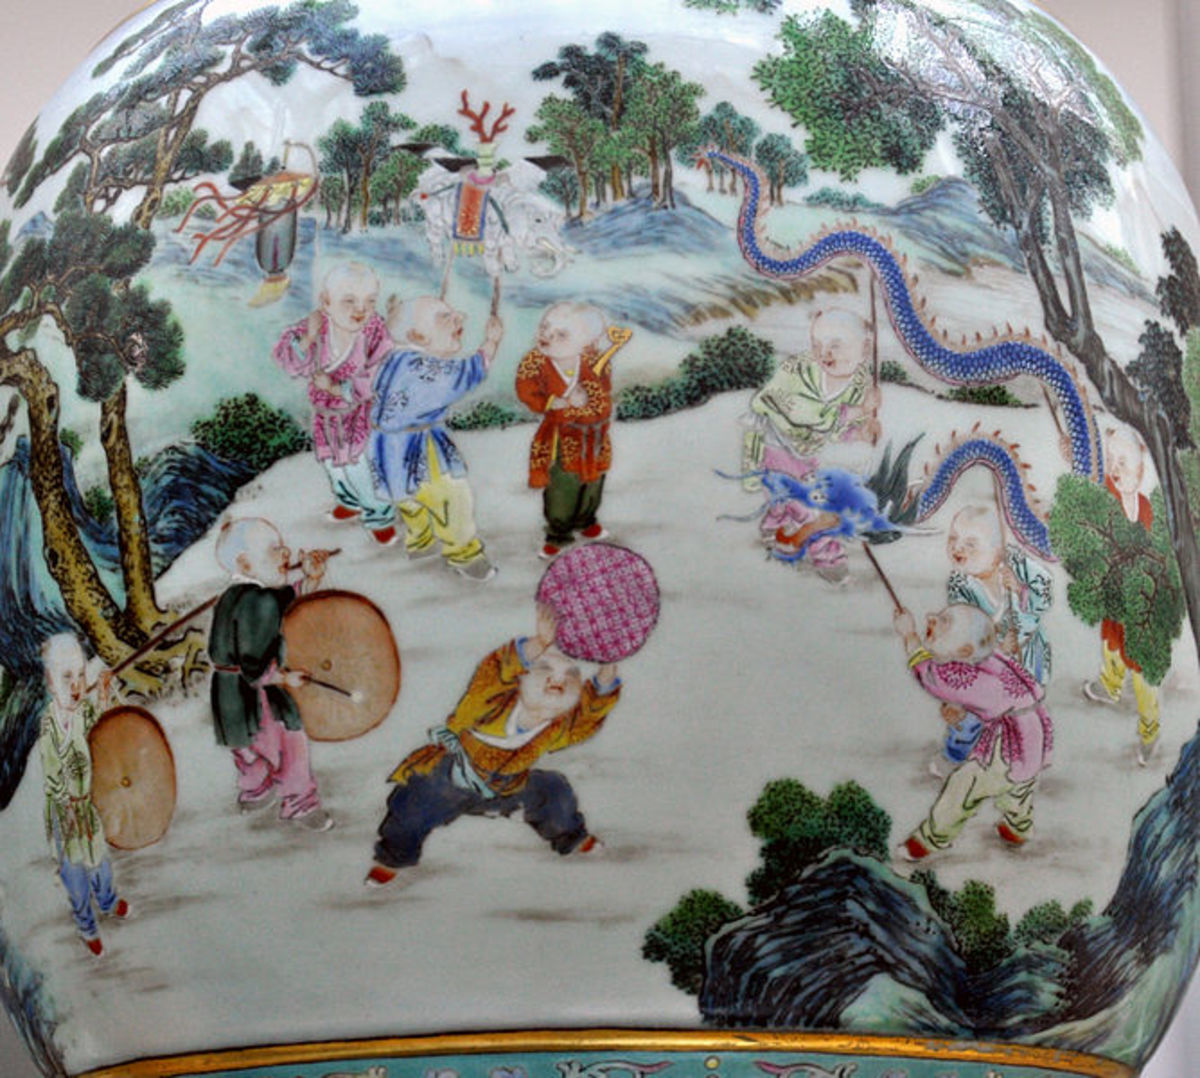 Vase with 100 children playing; made in Jingdezhen, c. 1770–1795; porcelain decorated in polychrome overglaze enamels